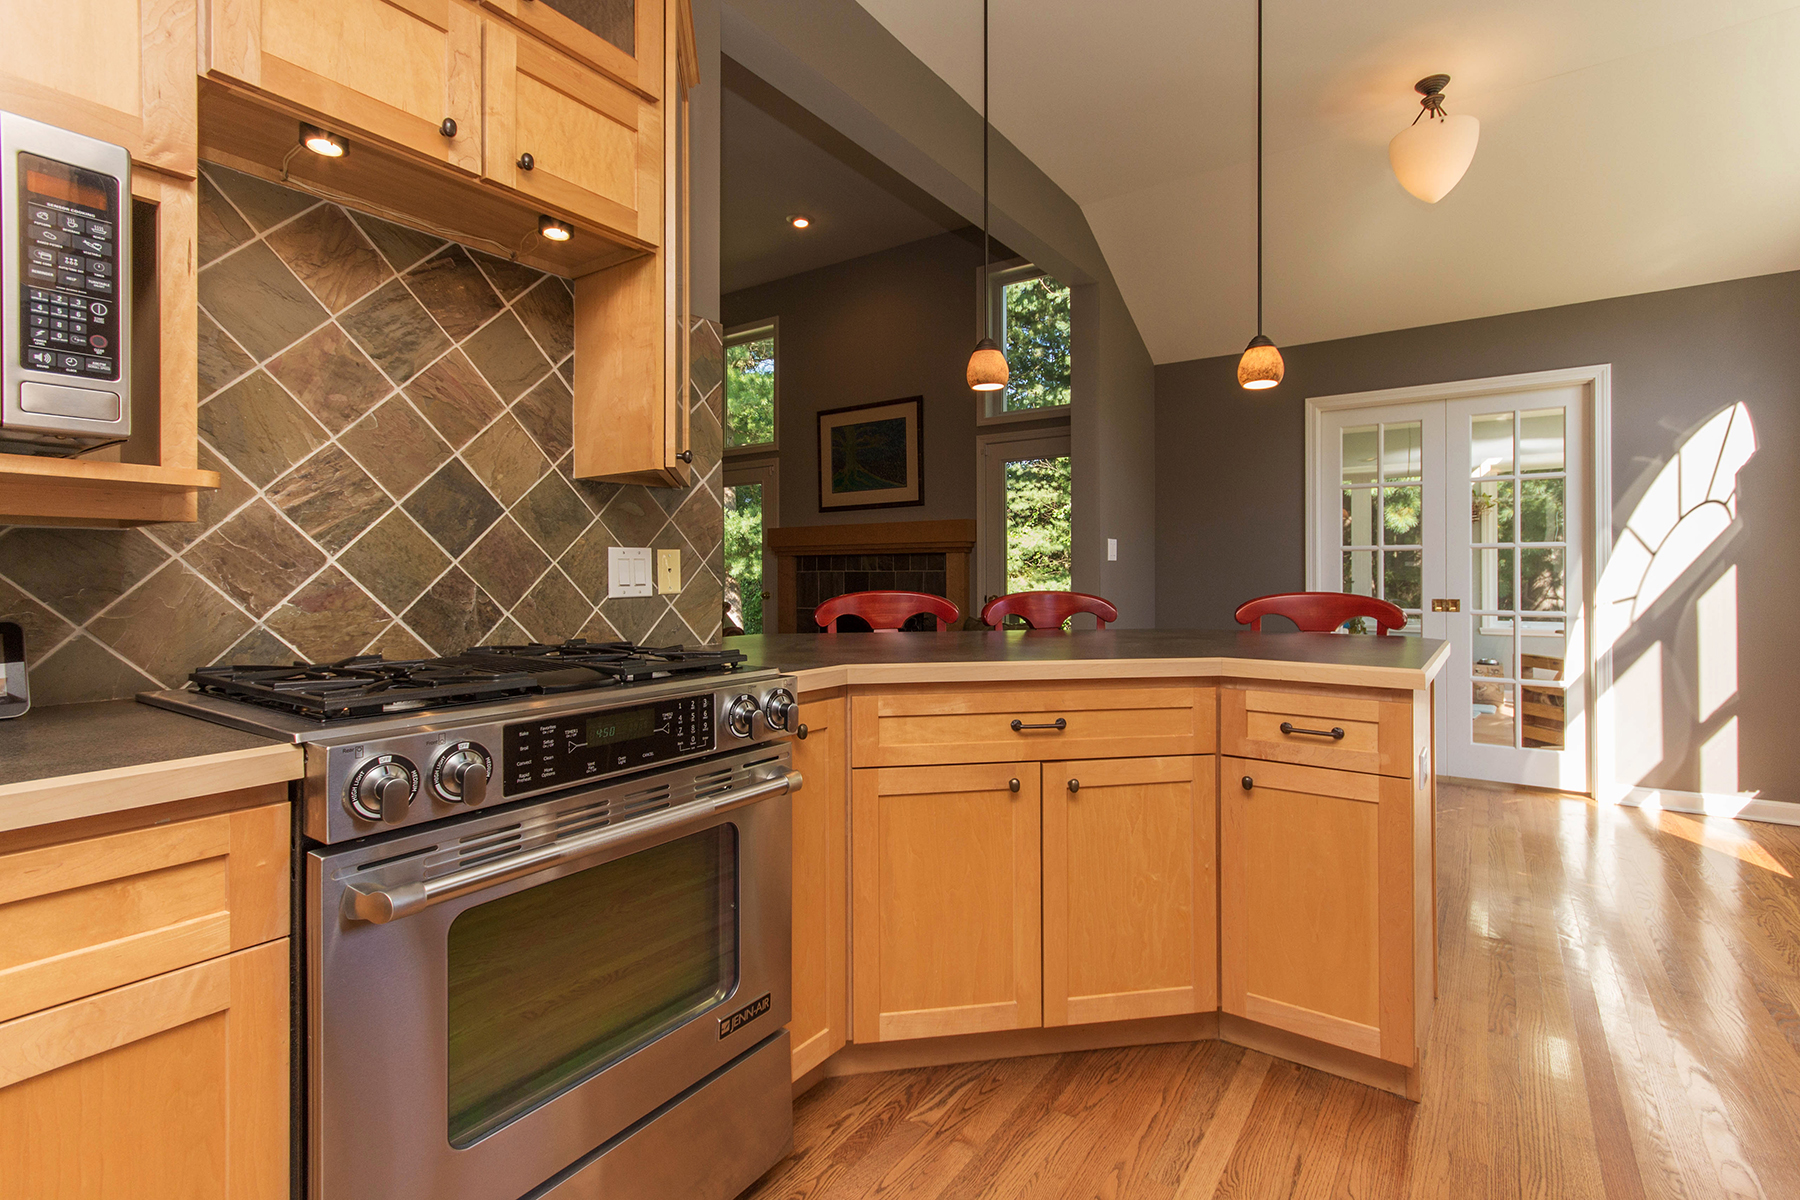 Additional photo for property listing at Summer Wind 22  Waterview Dr Saratoga Springs, Nueva York 12866 Estados Unidos